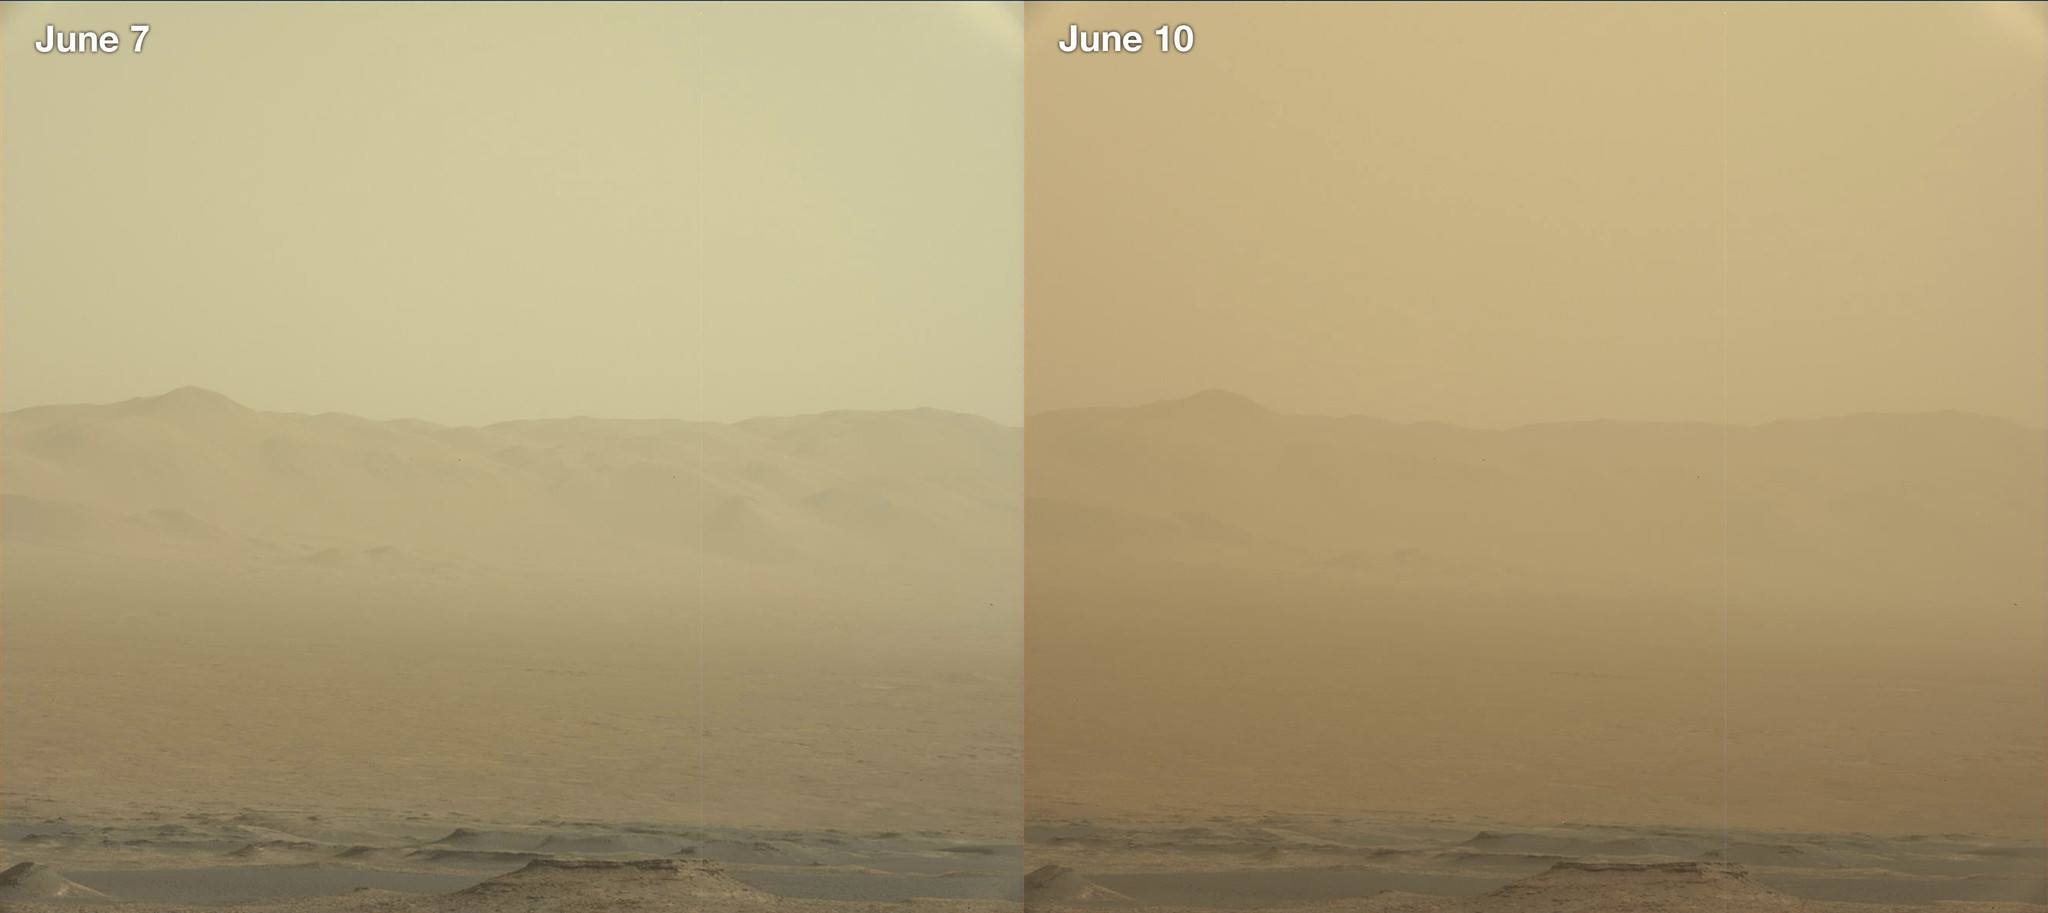 The dust storm on Mars reached a planetary scale, affecting even Curiosity